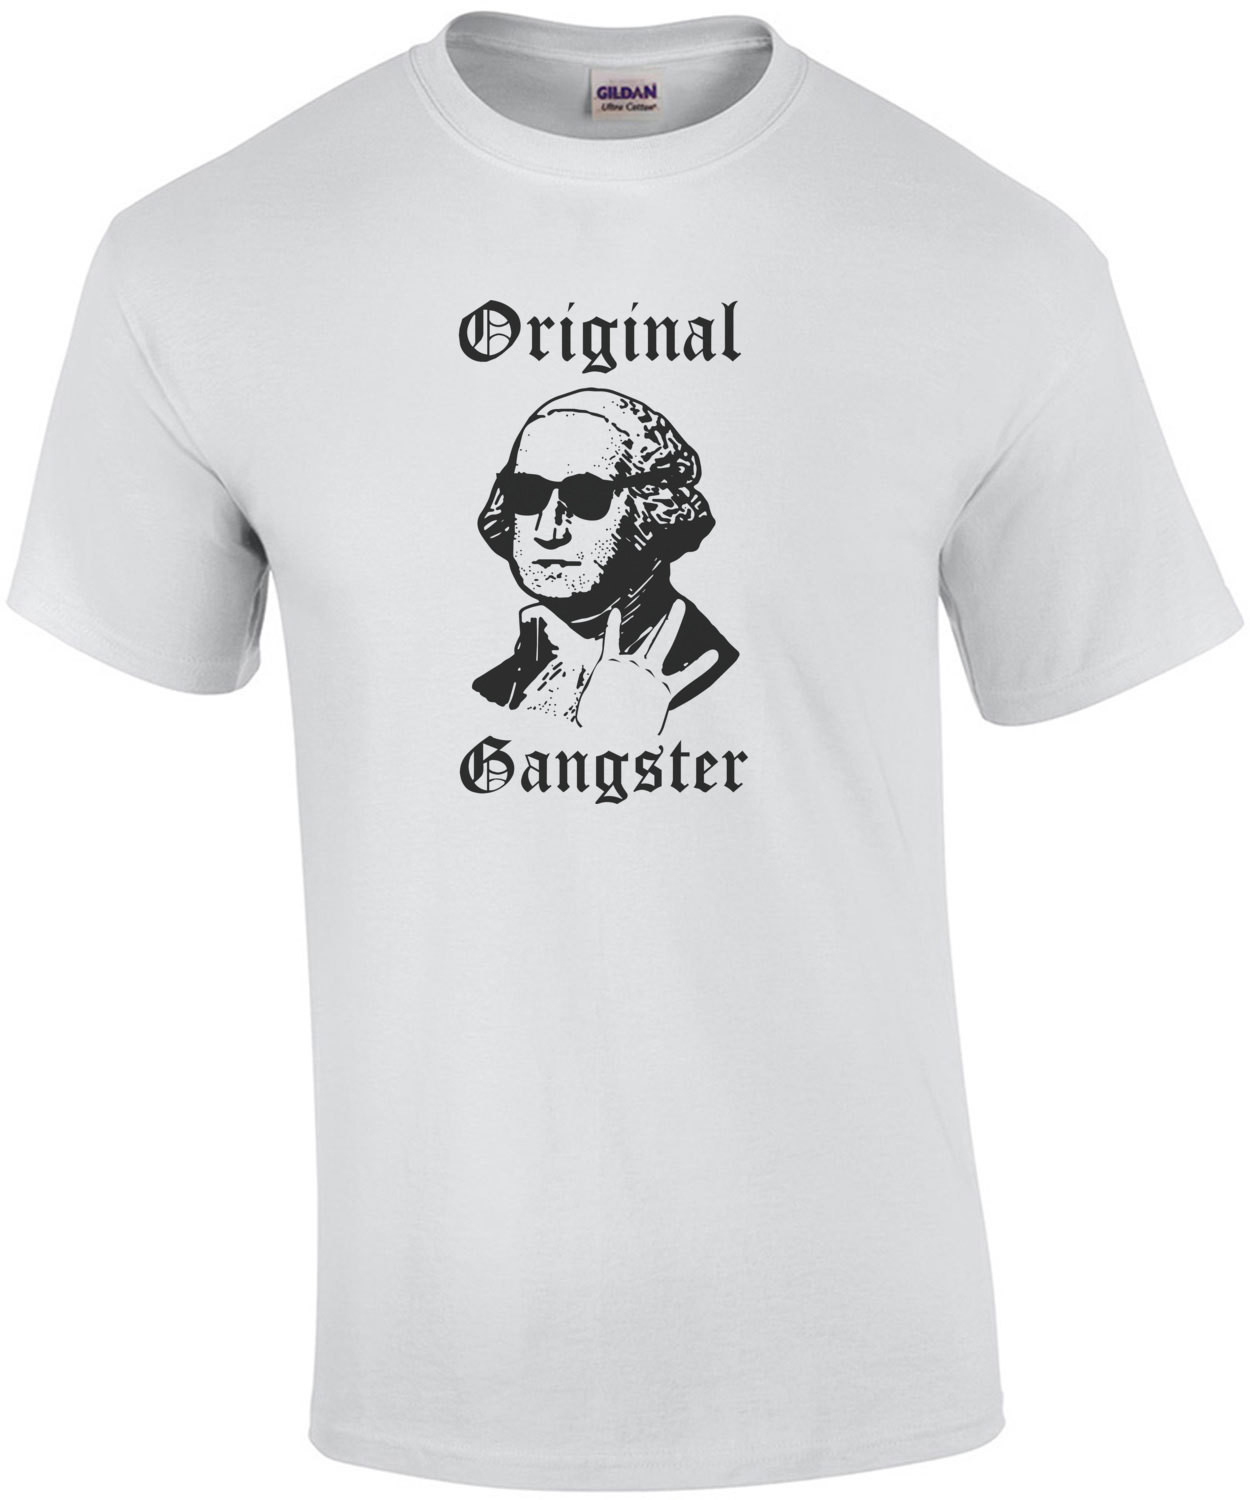 Original Gangster - George Washington Gangster Funny T-Shirt